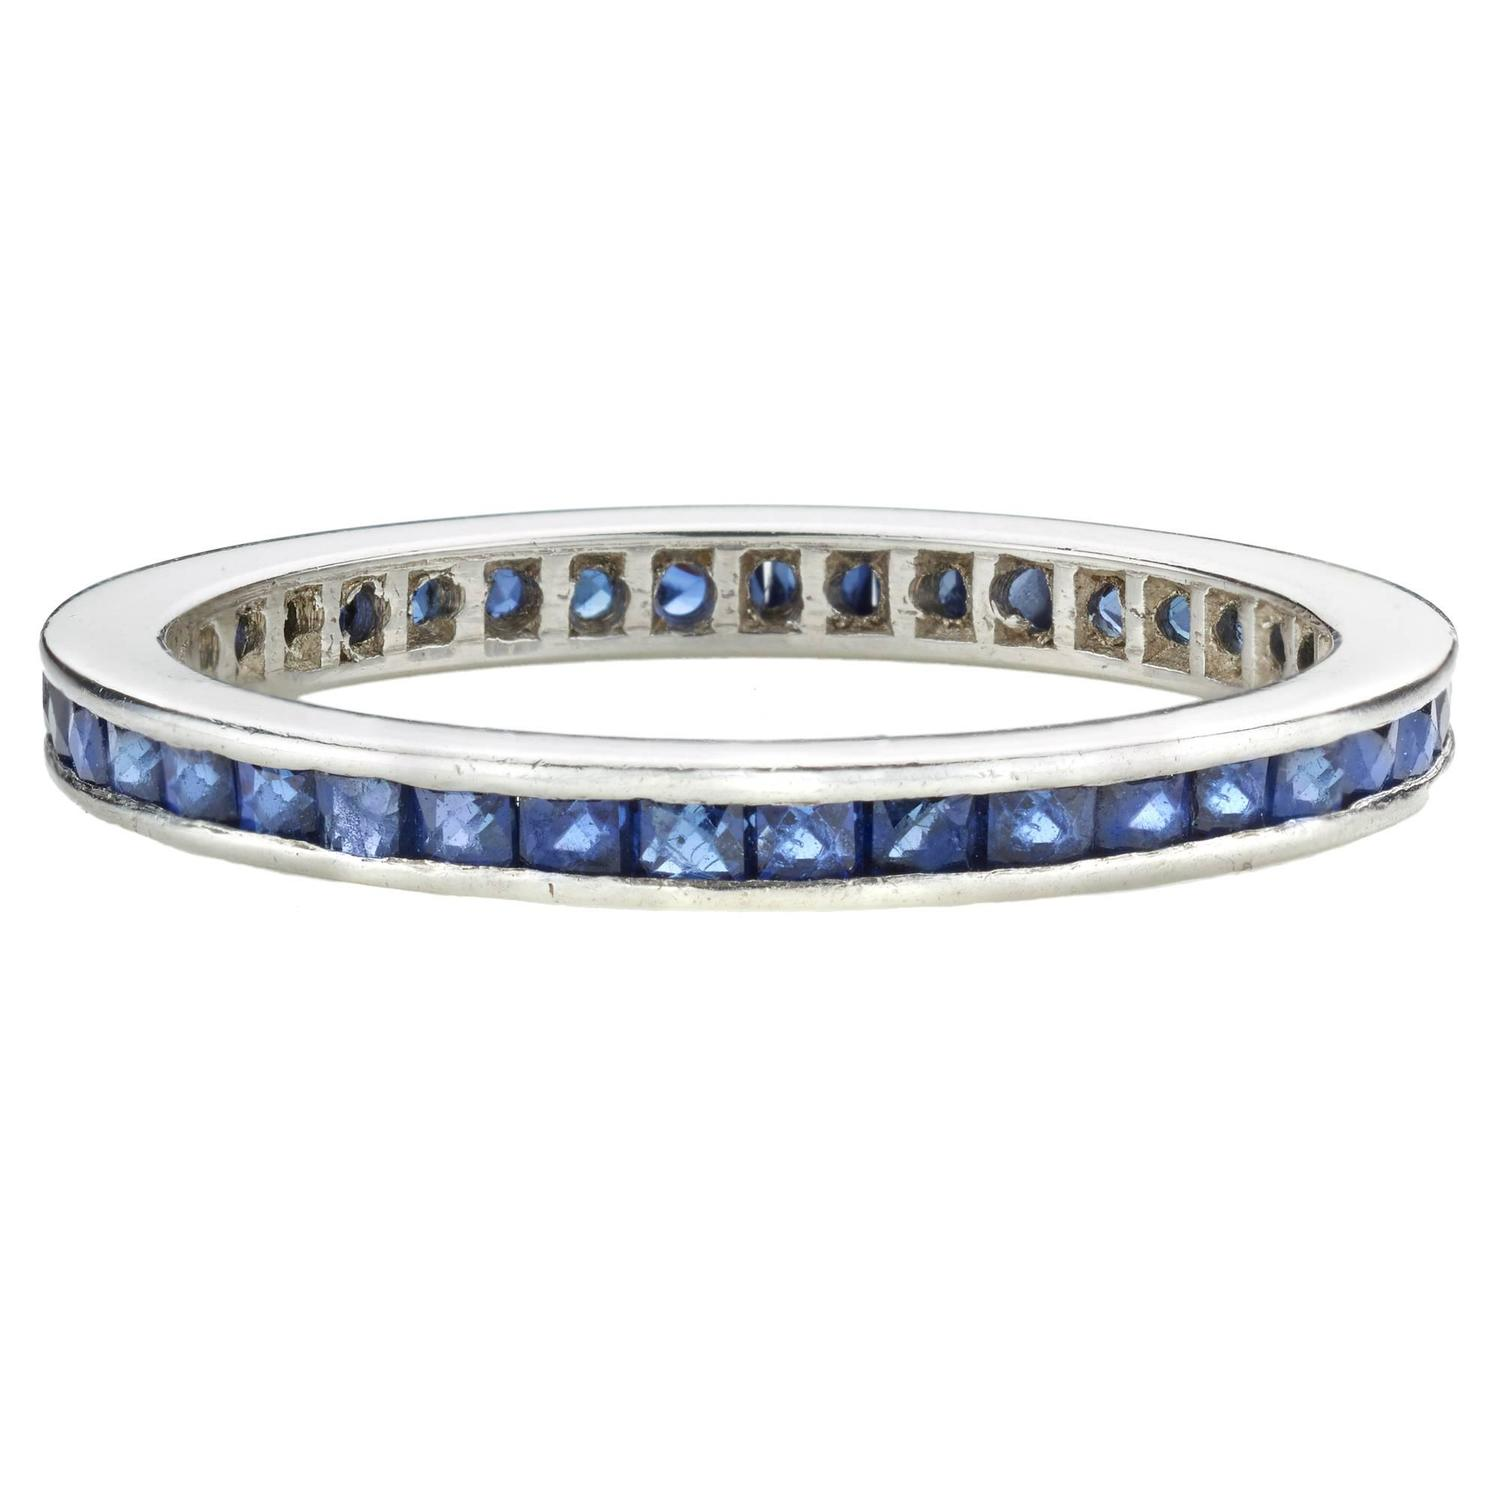 nl diamond band stone sapphire round with jewelry prong white wedding shared bands anniversary gold yellow in yg blue set